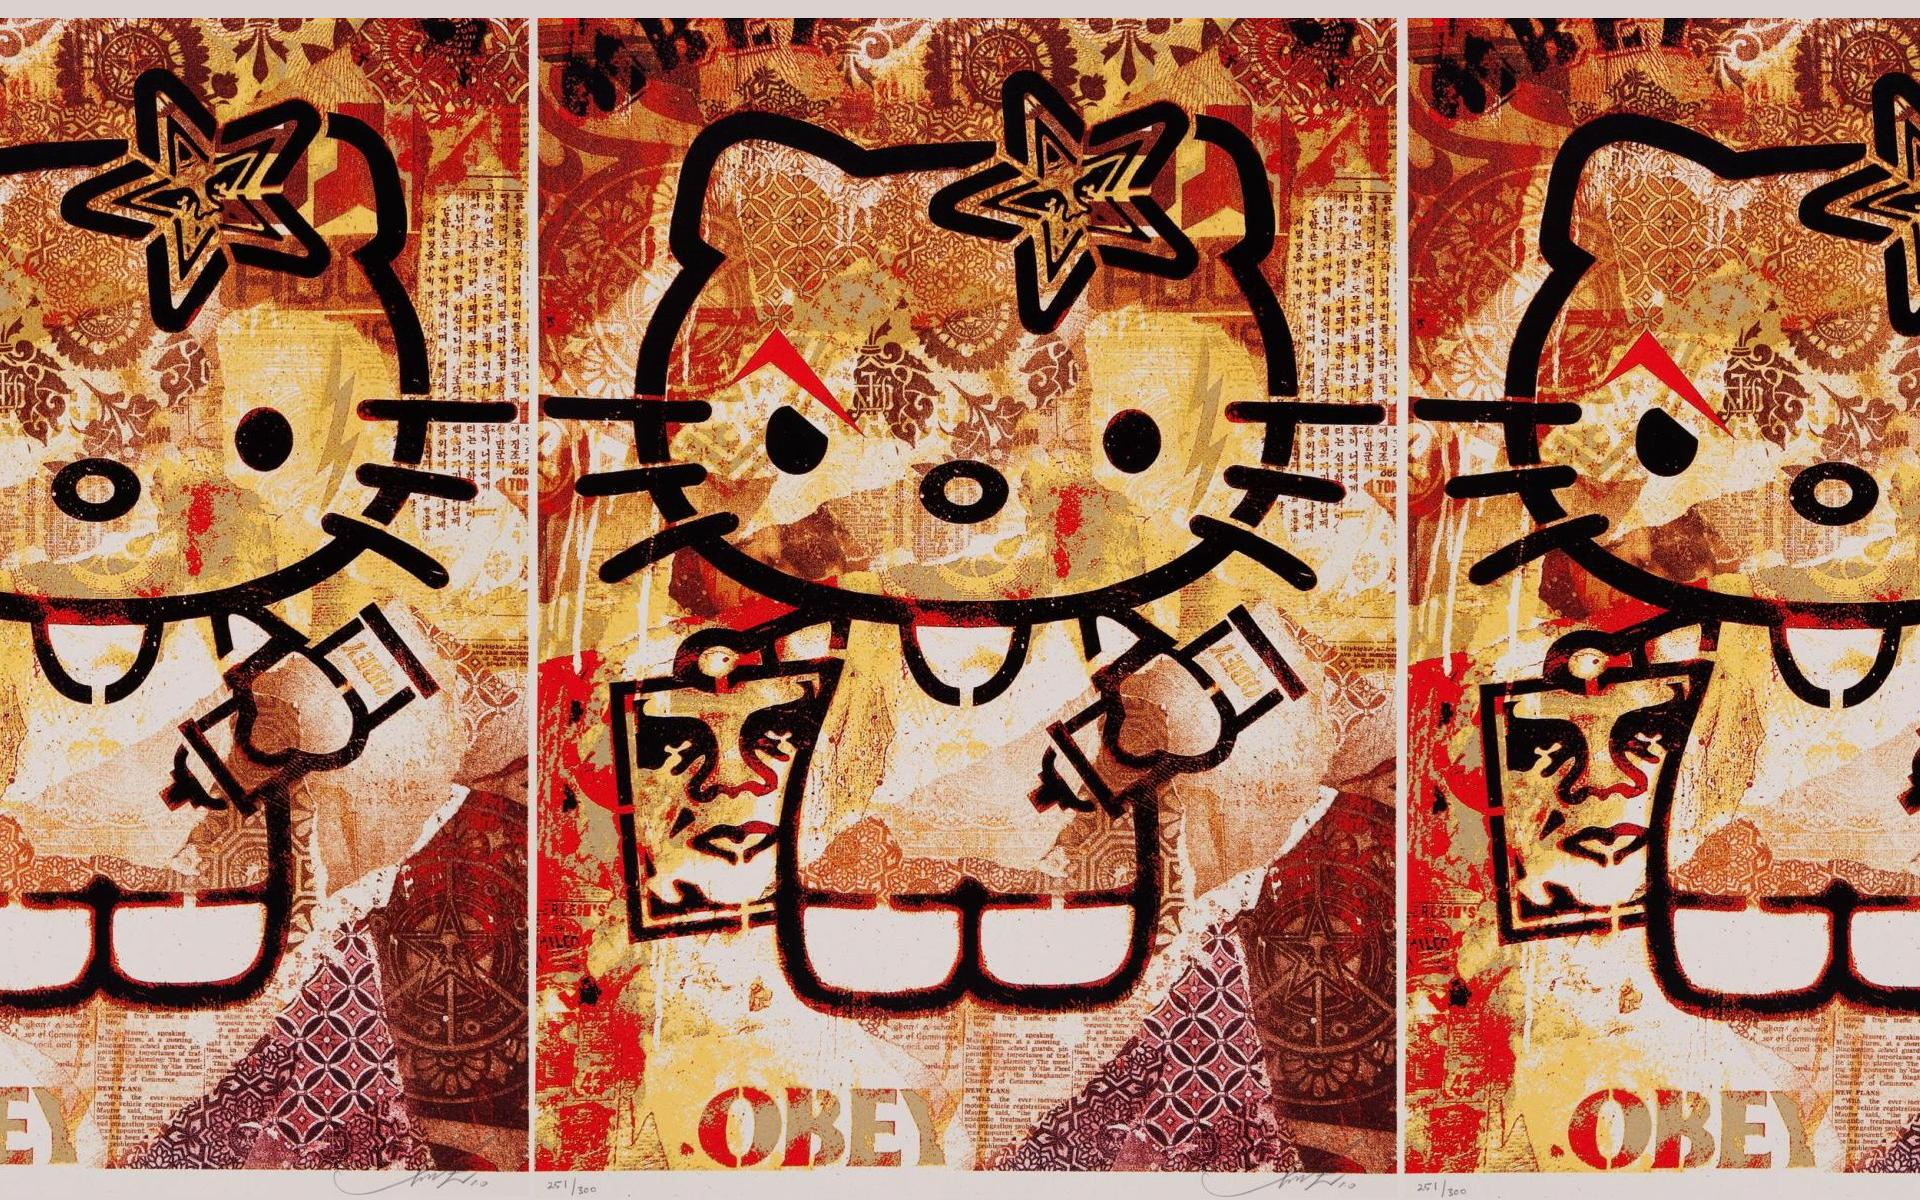 Obey Hello Kitty Wallpapers Myspace Backgrounds 1920x1200